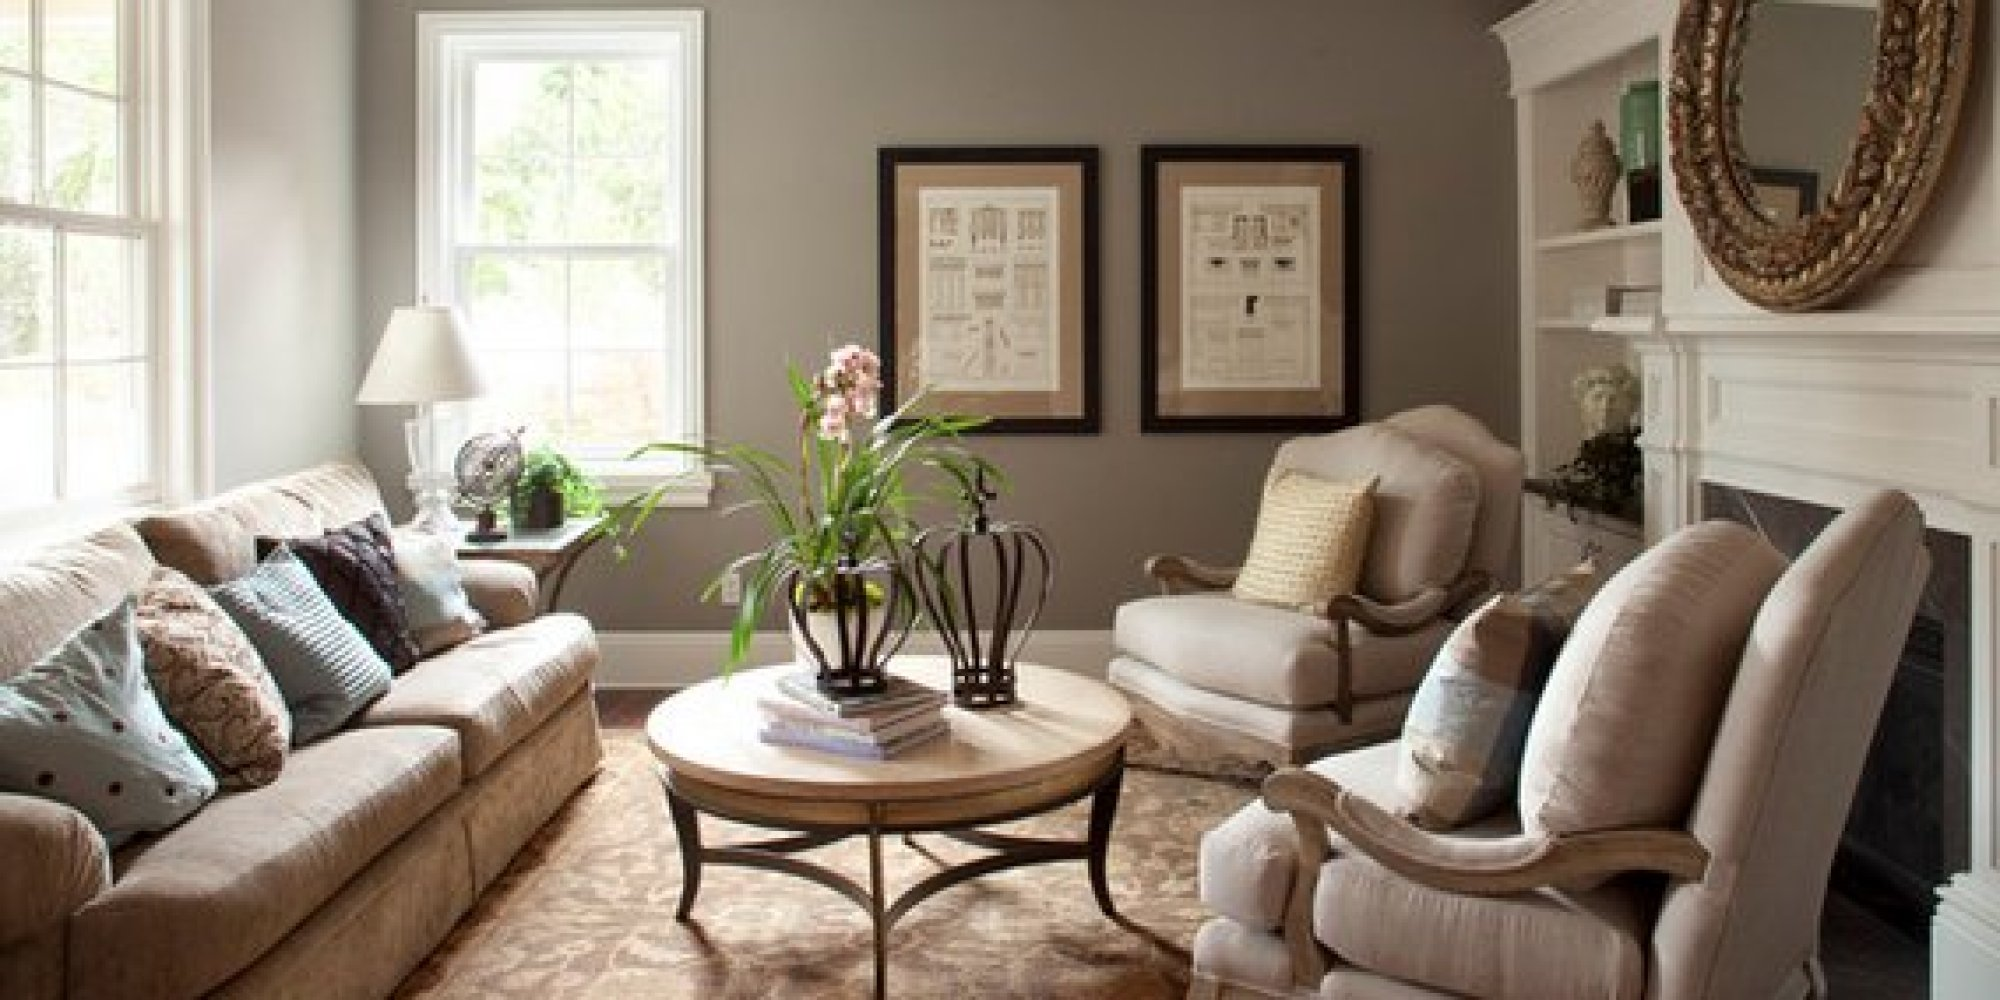 Popular Green Paint Colors the 6 best paint colors that work in any home | huffpost